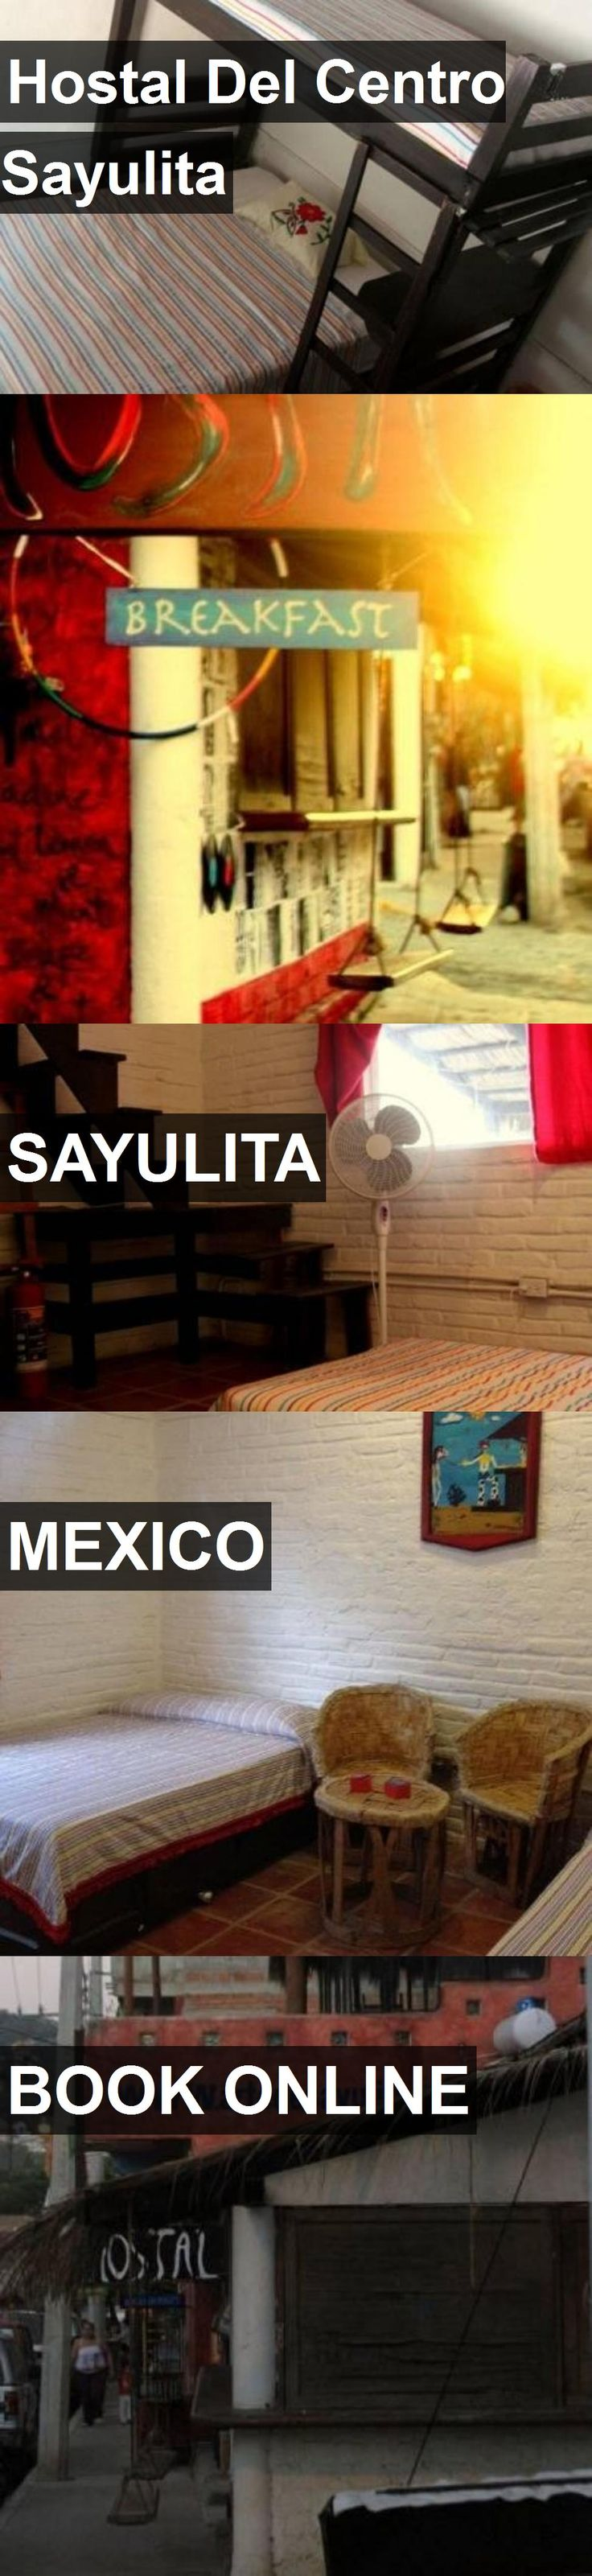 Hotel Hostal Del Centro Sayulita in Sayulita, Mexico. For more information, photos, reviews and best prices please follow the link. #Mexico #Sayulita #hotel #travel #vacation